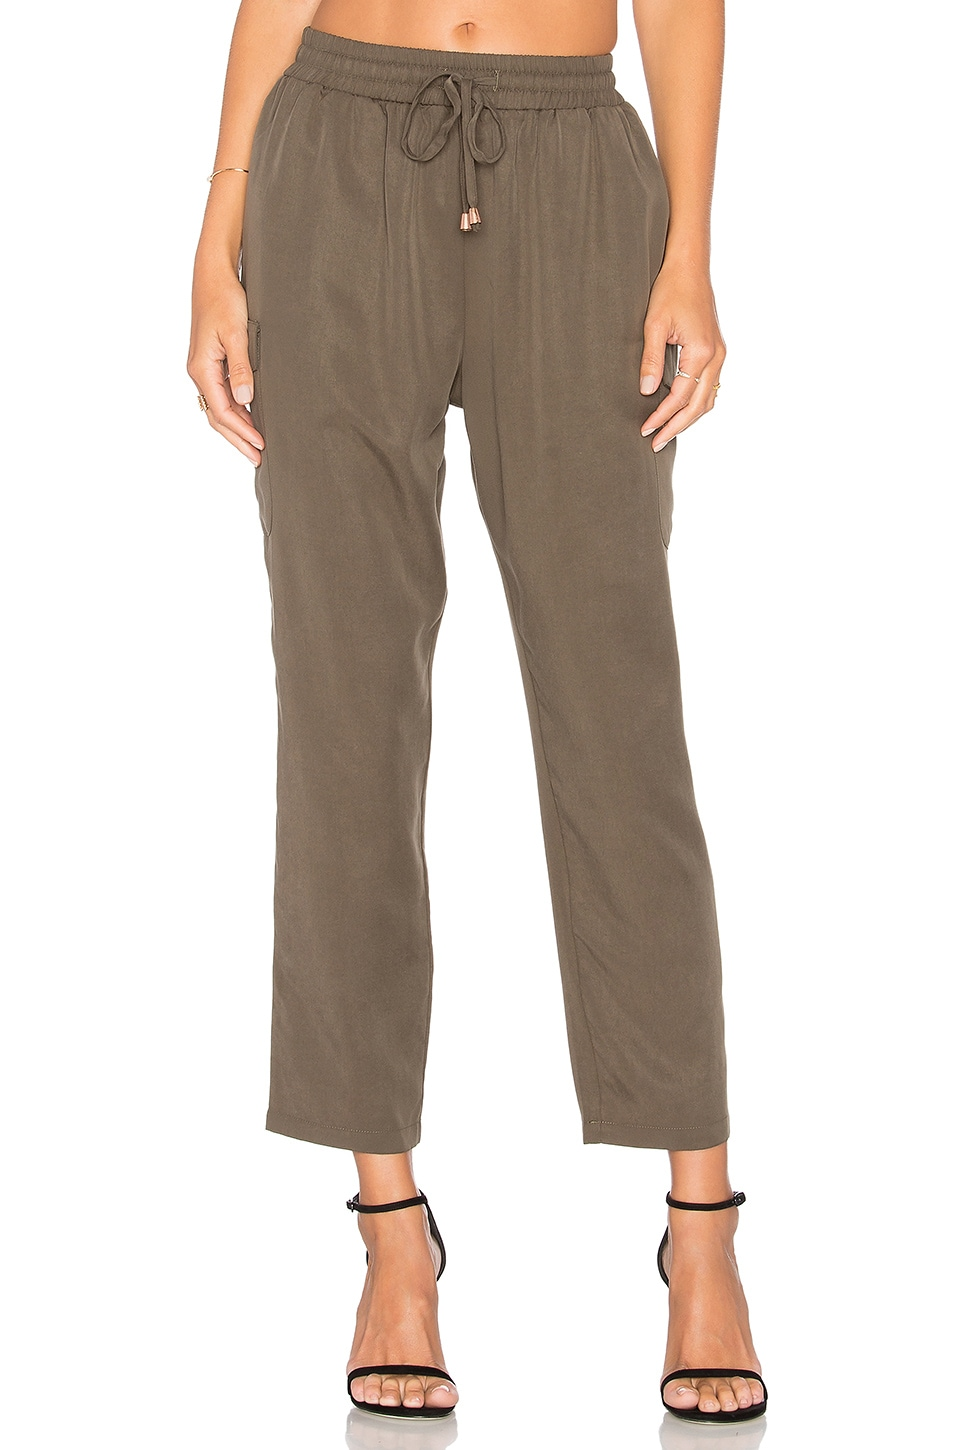 Lovers + Friends Zoey Pant in Moss